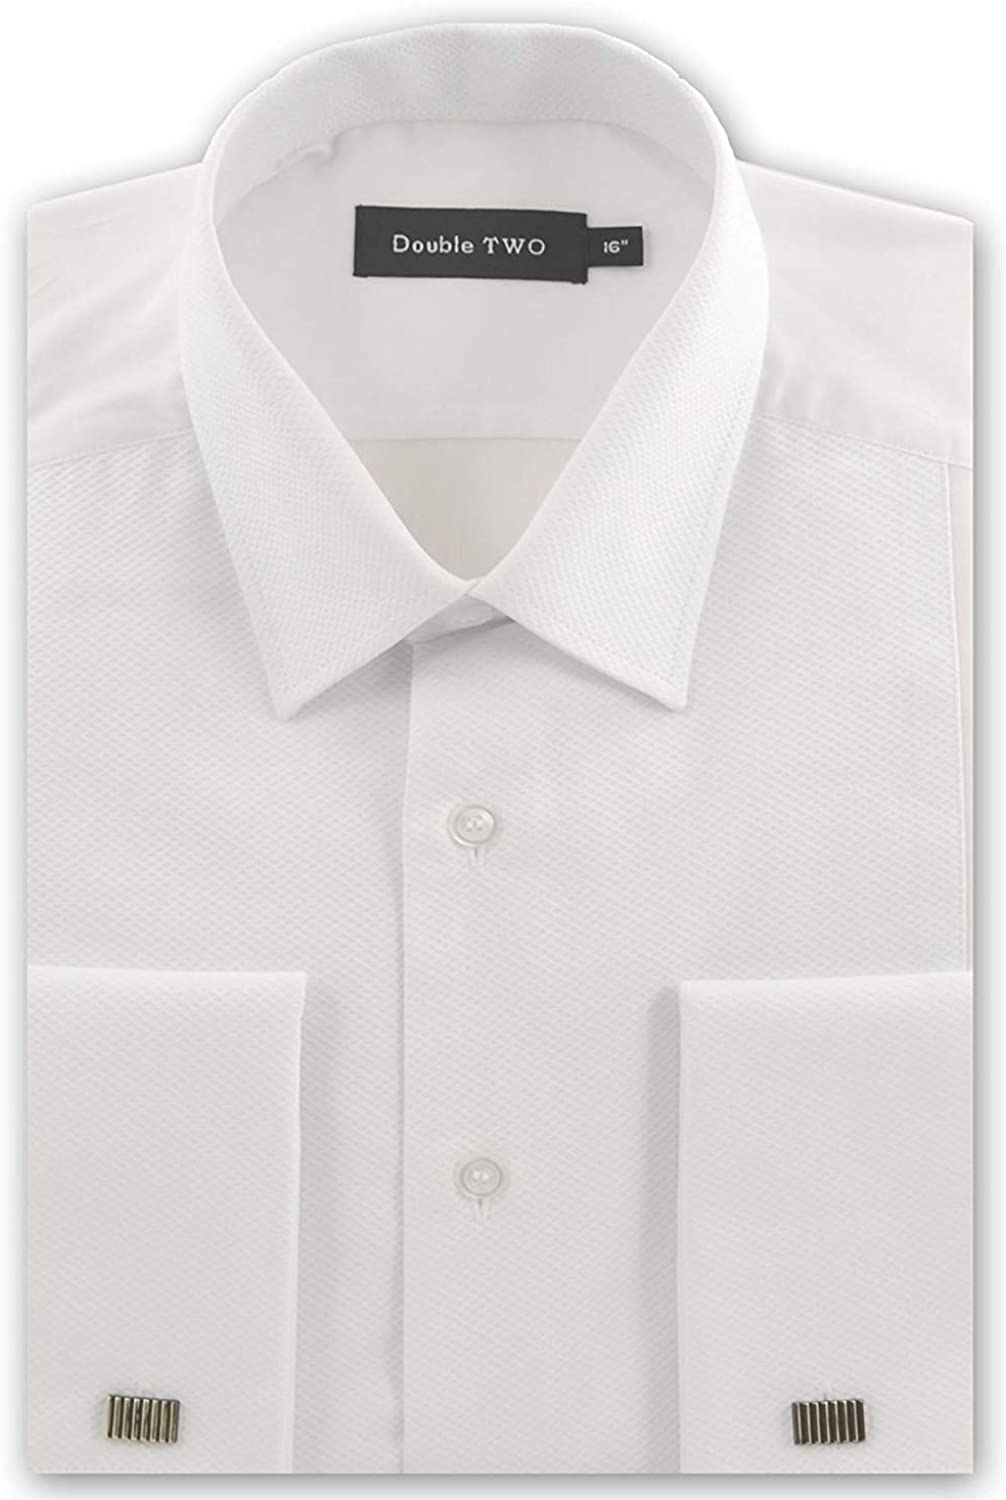 Double TWO Mens Marcella Rib Front Collar 5001 lowest price Dress Shirt in Ranking TOP17